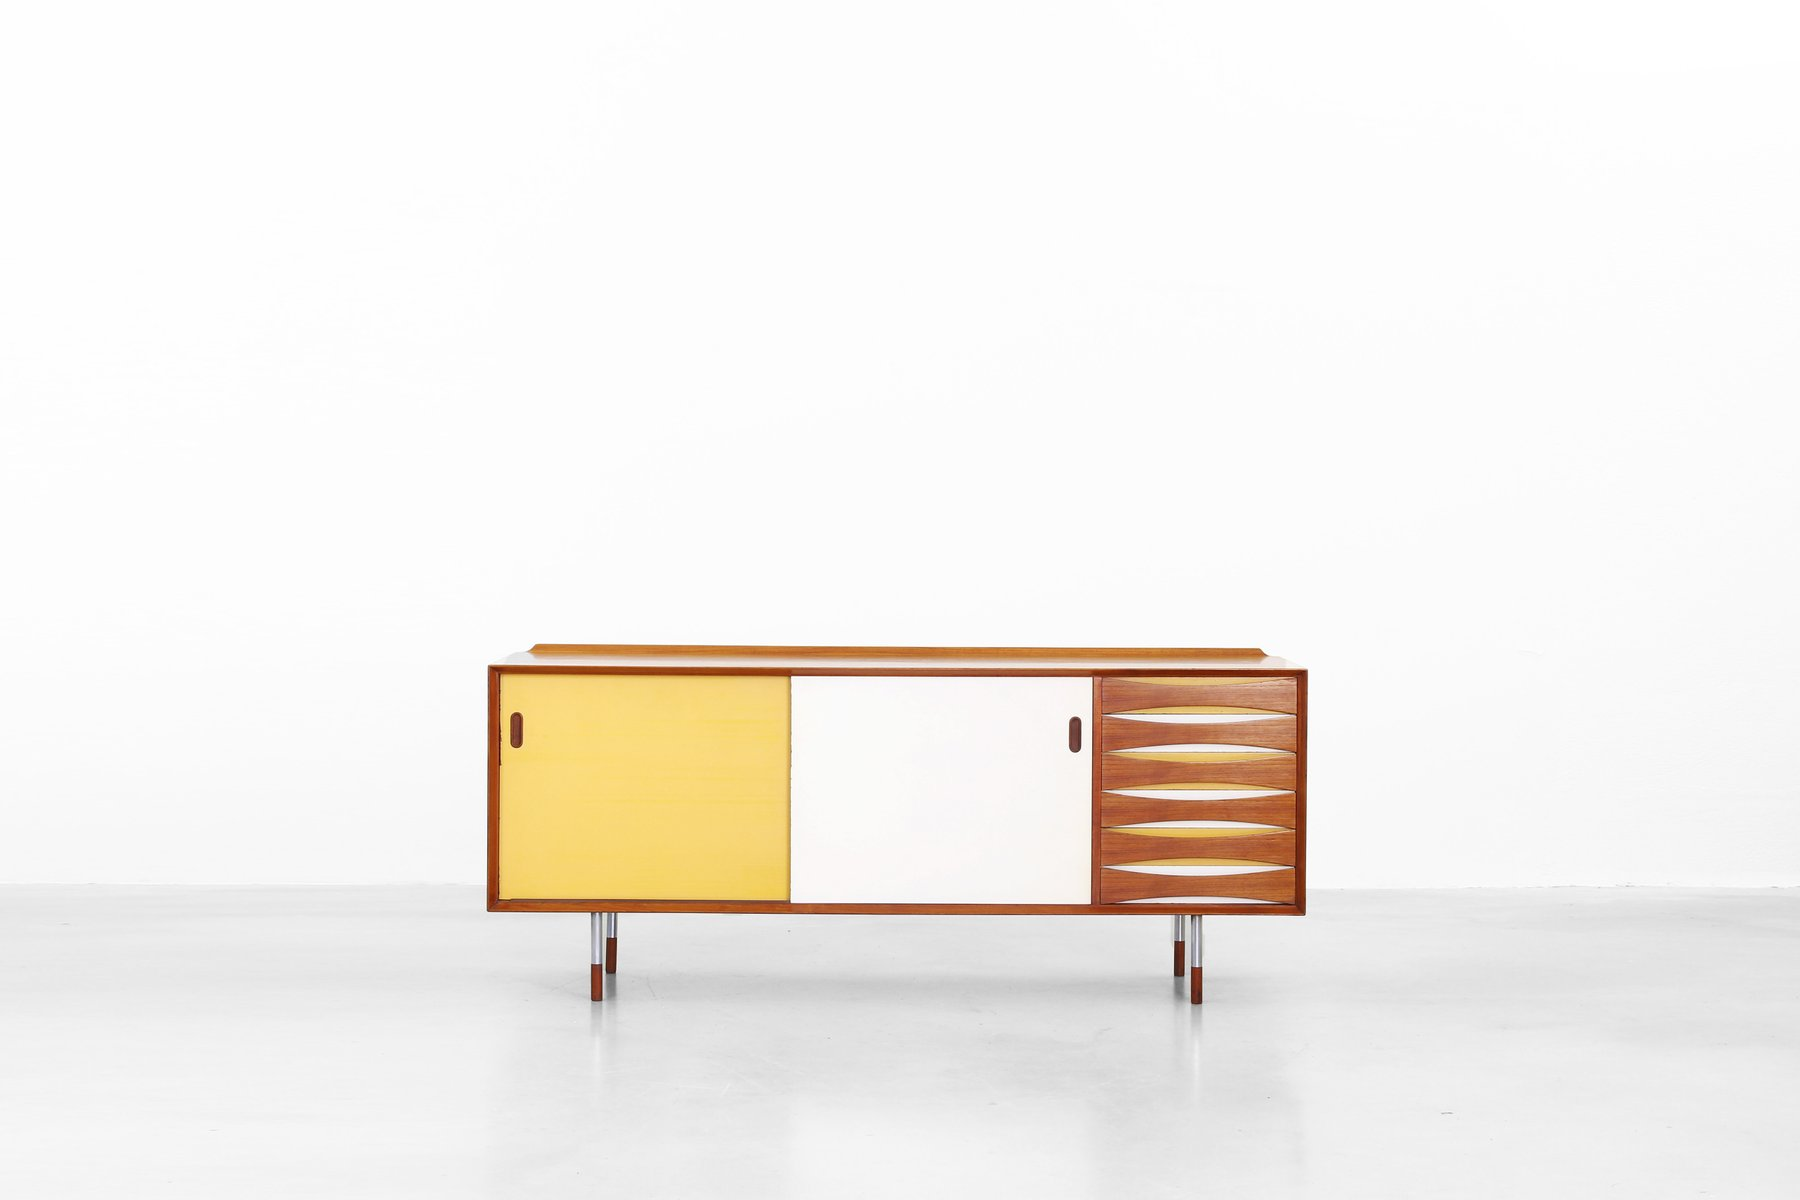 mid century danish mod 29 sideboard by arne vodder for sibast furniture 1958 for sale at pamono. Black Bedroom Furniture Sets. Home Design Ideas